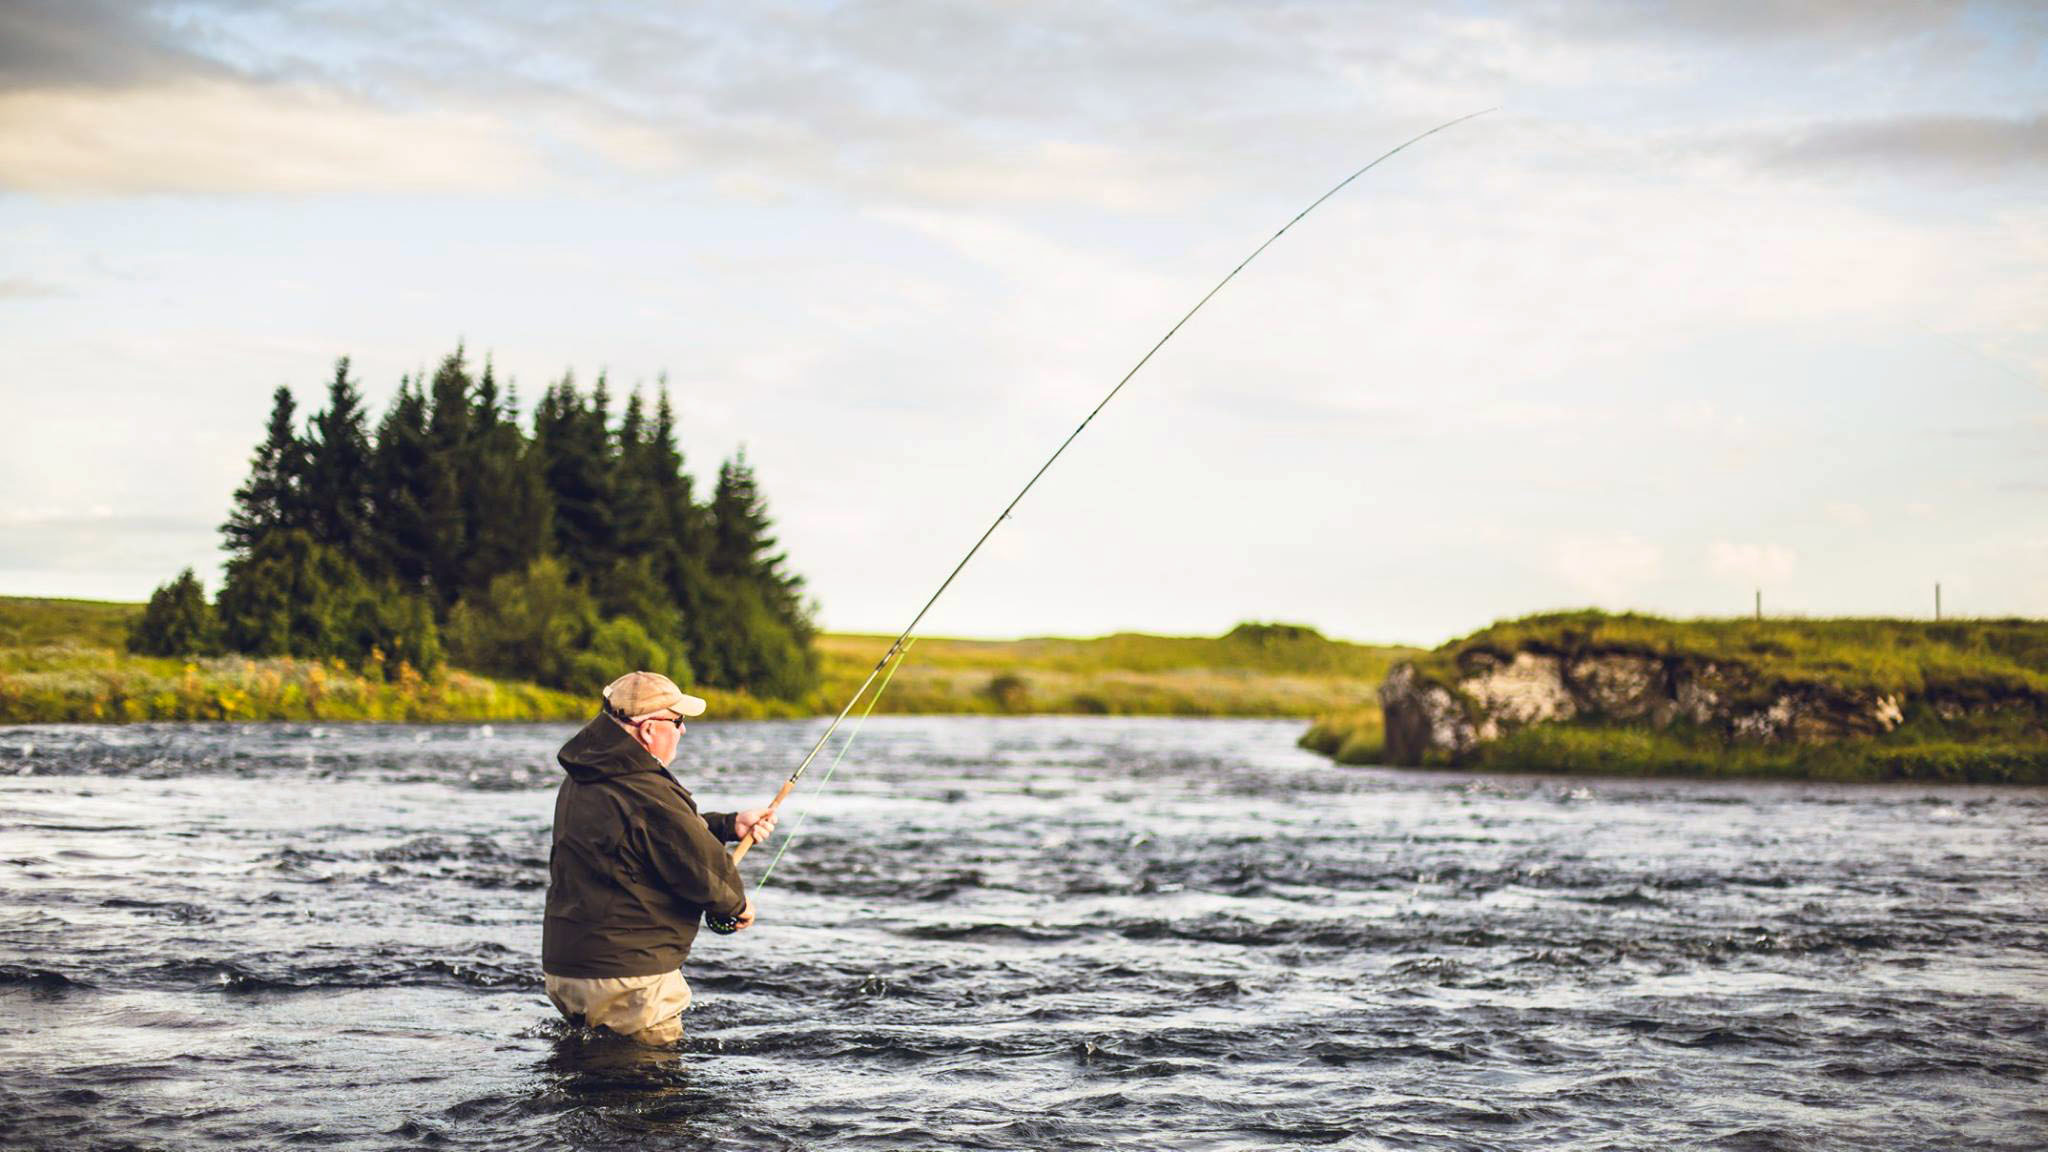 Iceland west rang great value late season salmon for Fishing in iceland